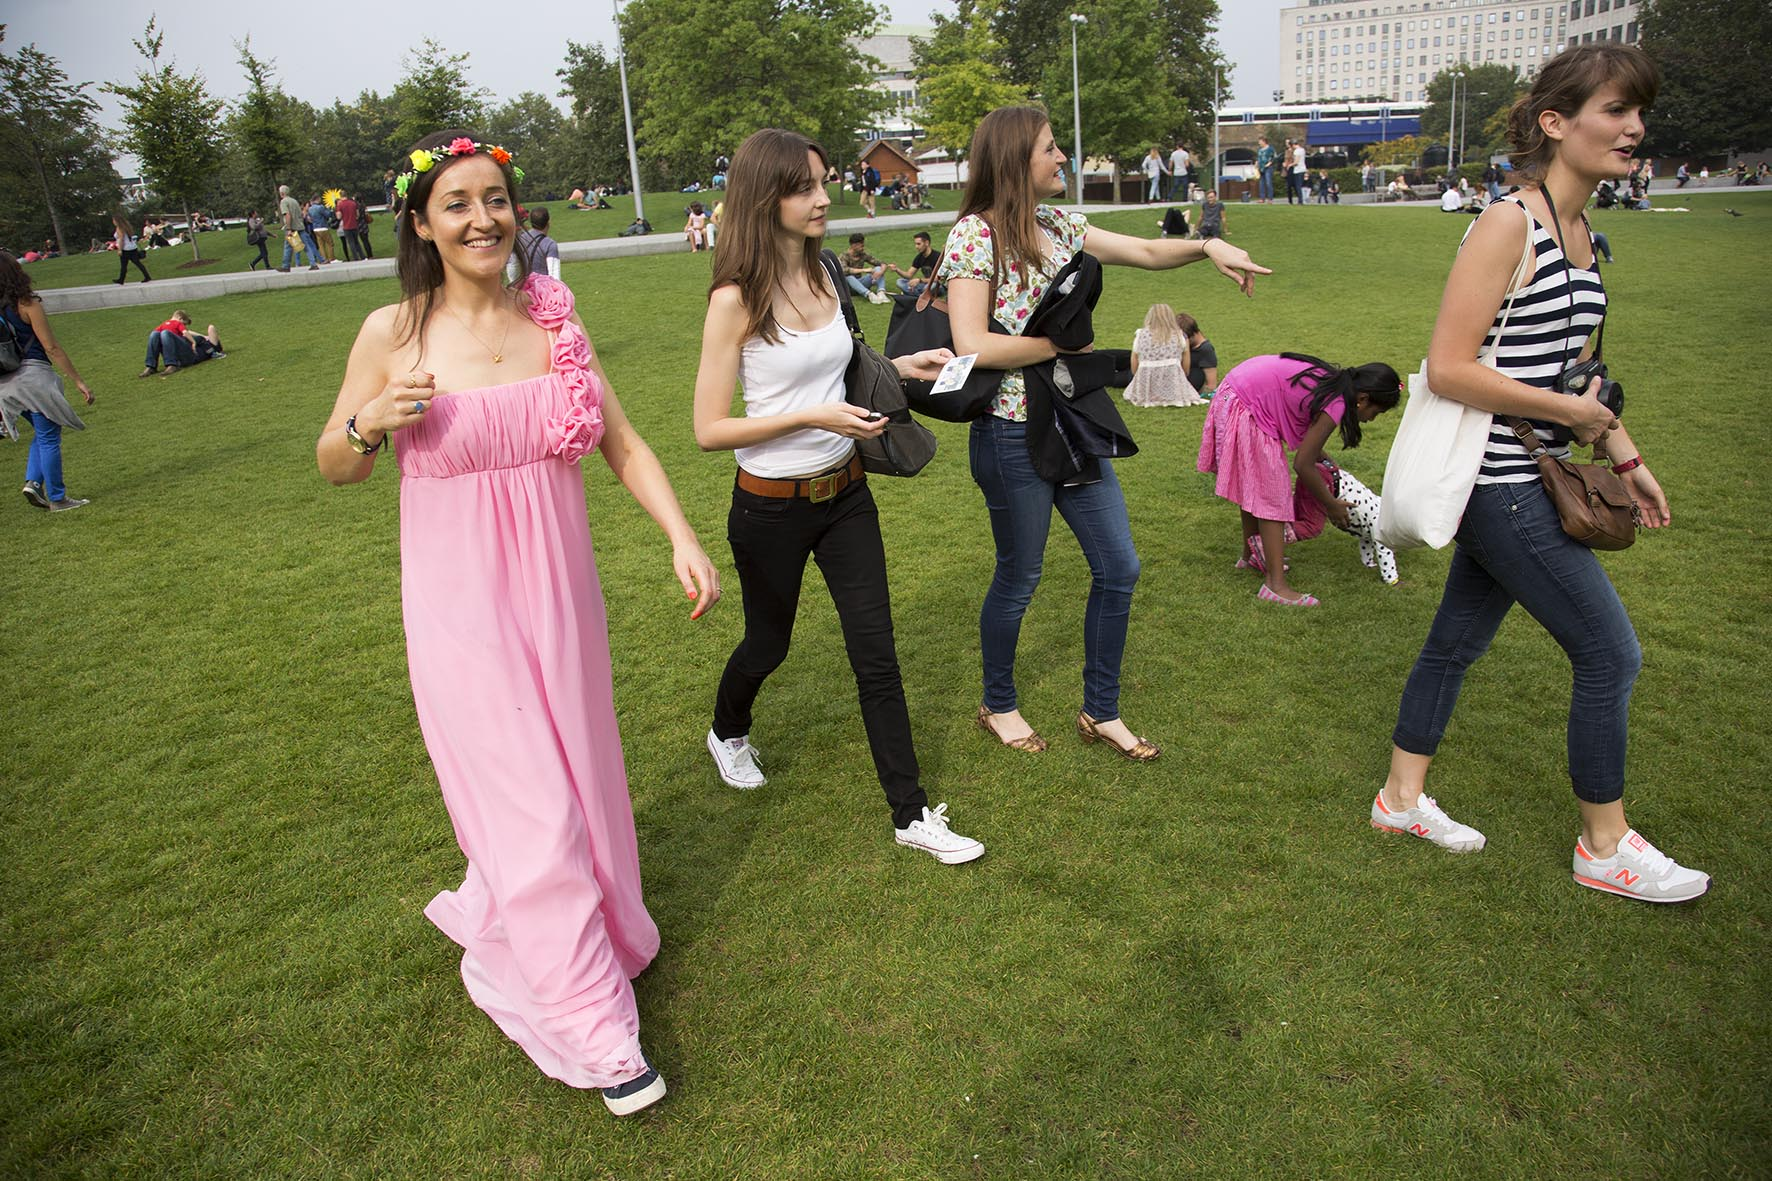 20140906_south bank hen party_G.jpg